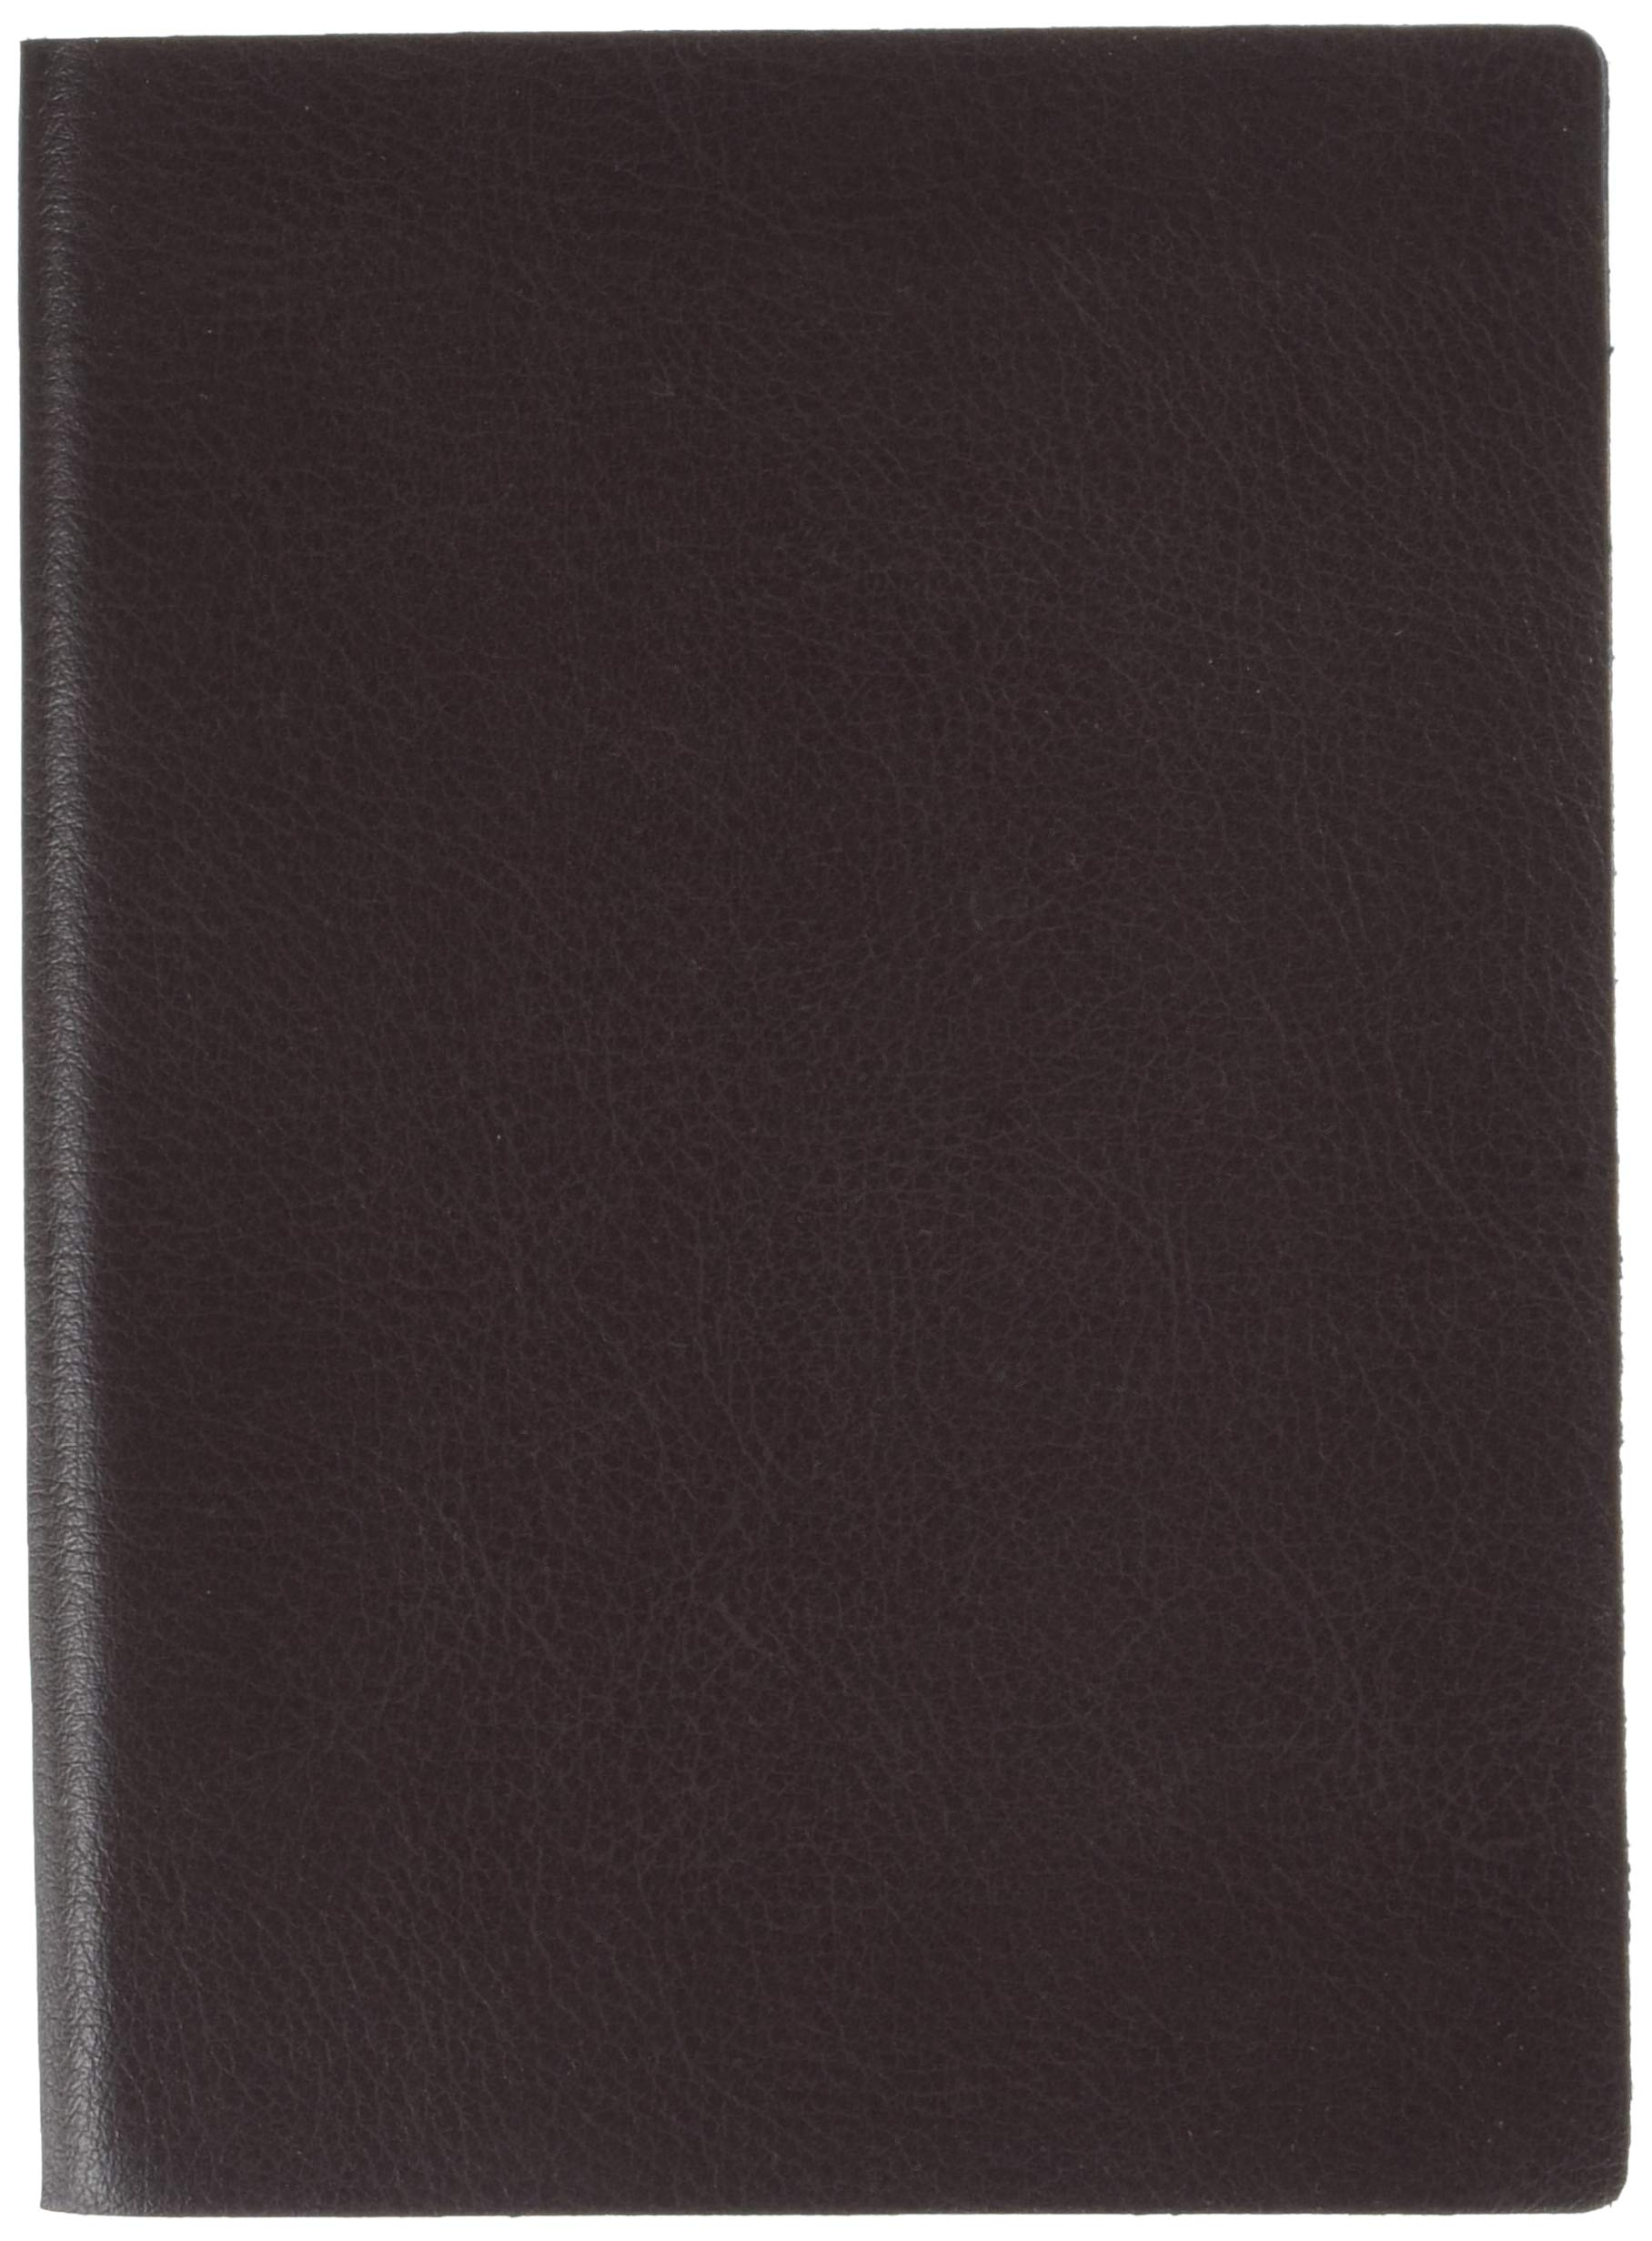 Editions Oberthur 452116Brown Leather A6Notebook